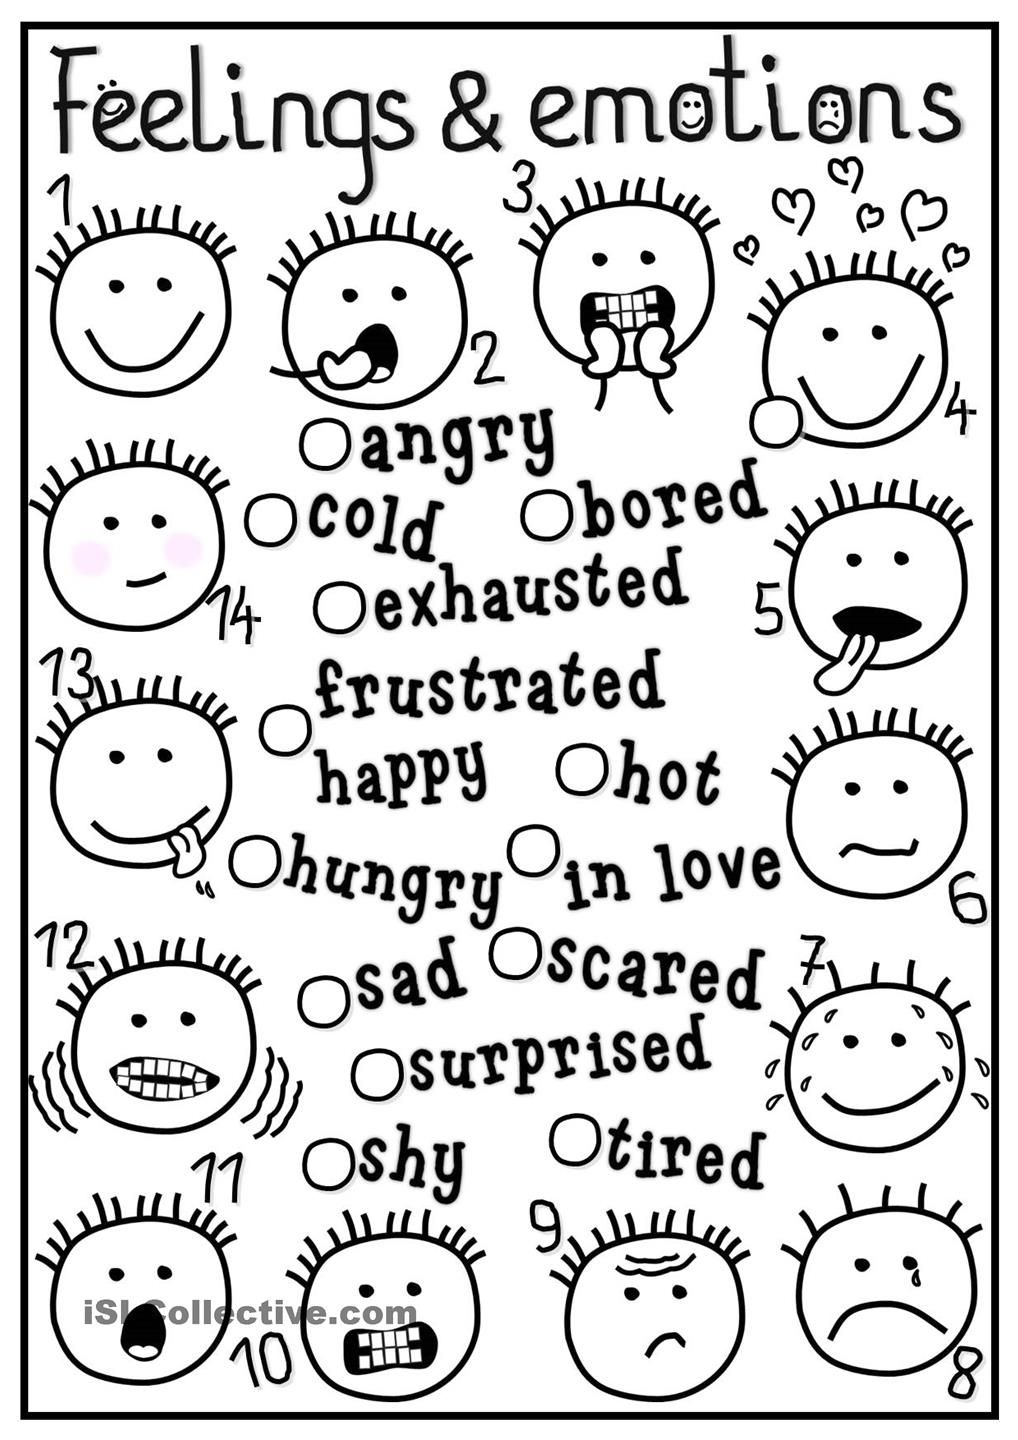 Feelings and emotions - matching | päivärytmiin | Pinterest ...